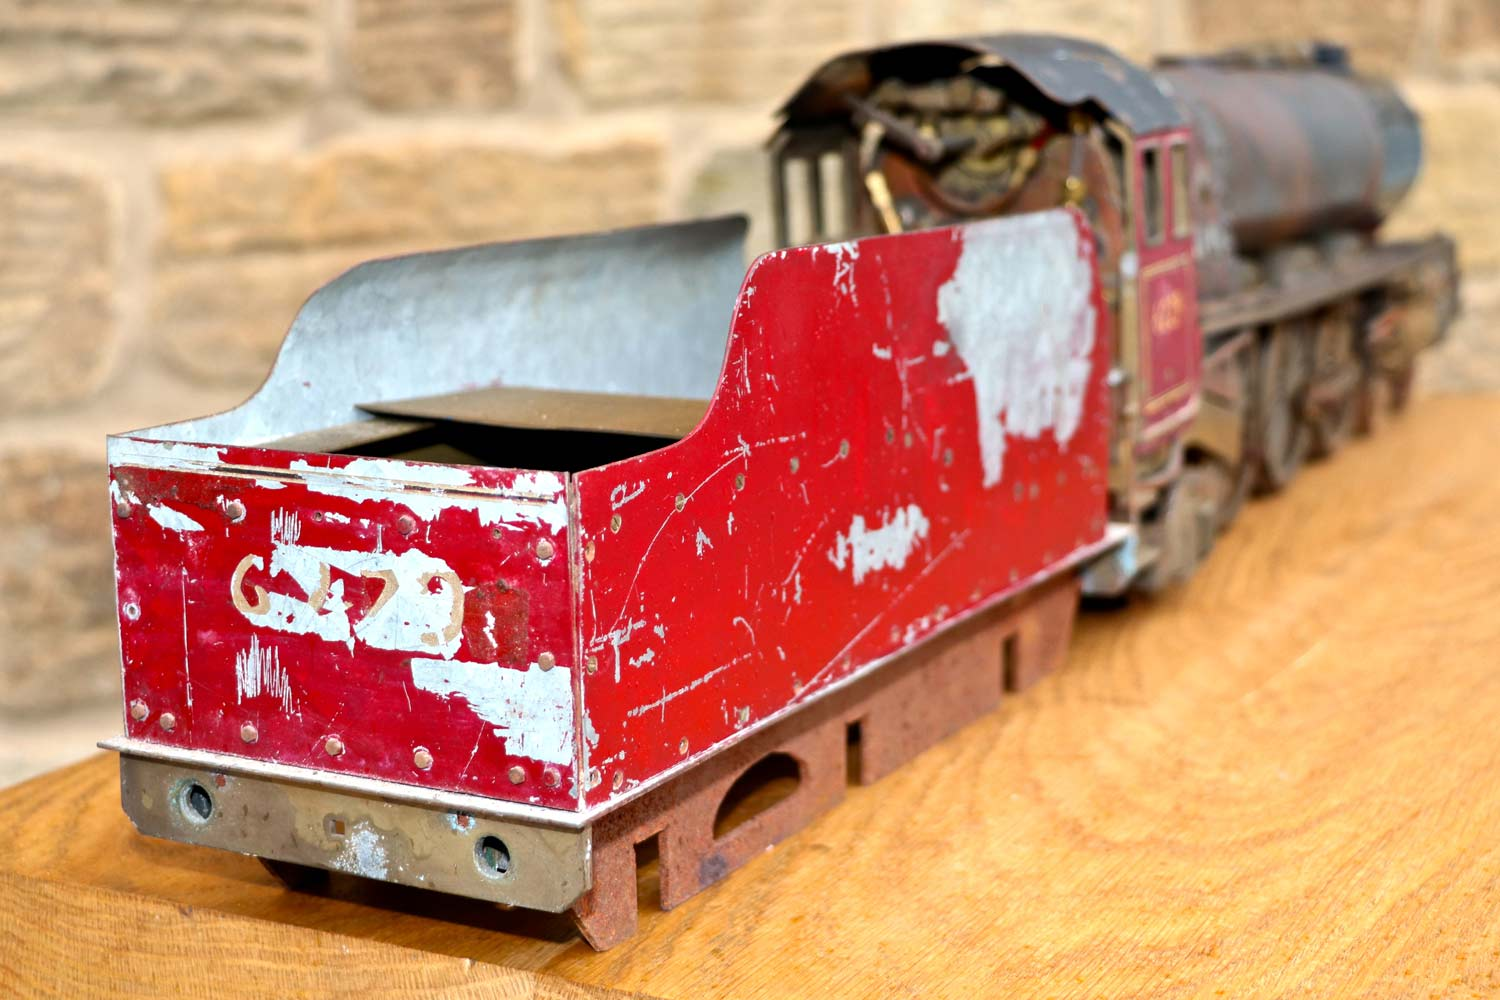 test 2-and-a-half-inch-gauge-LMS-Duchess-live-steam-locomotive-for-sale-07